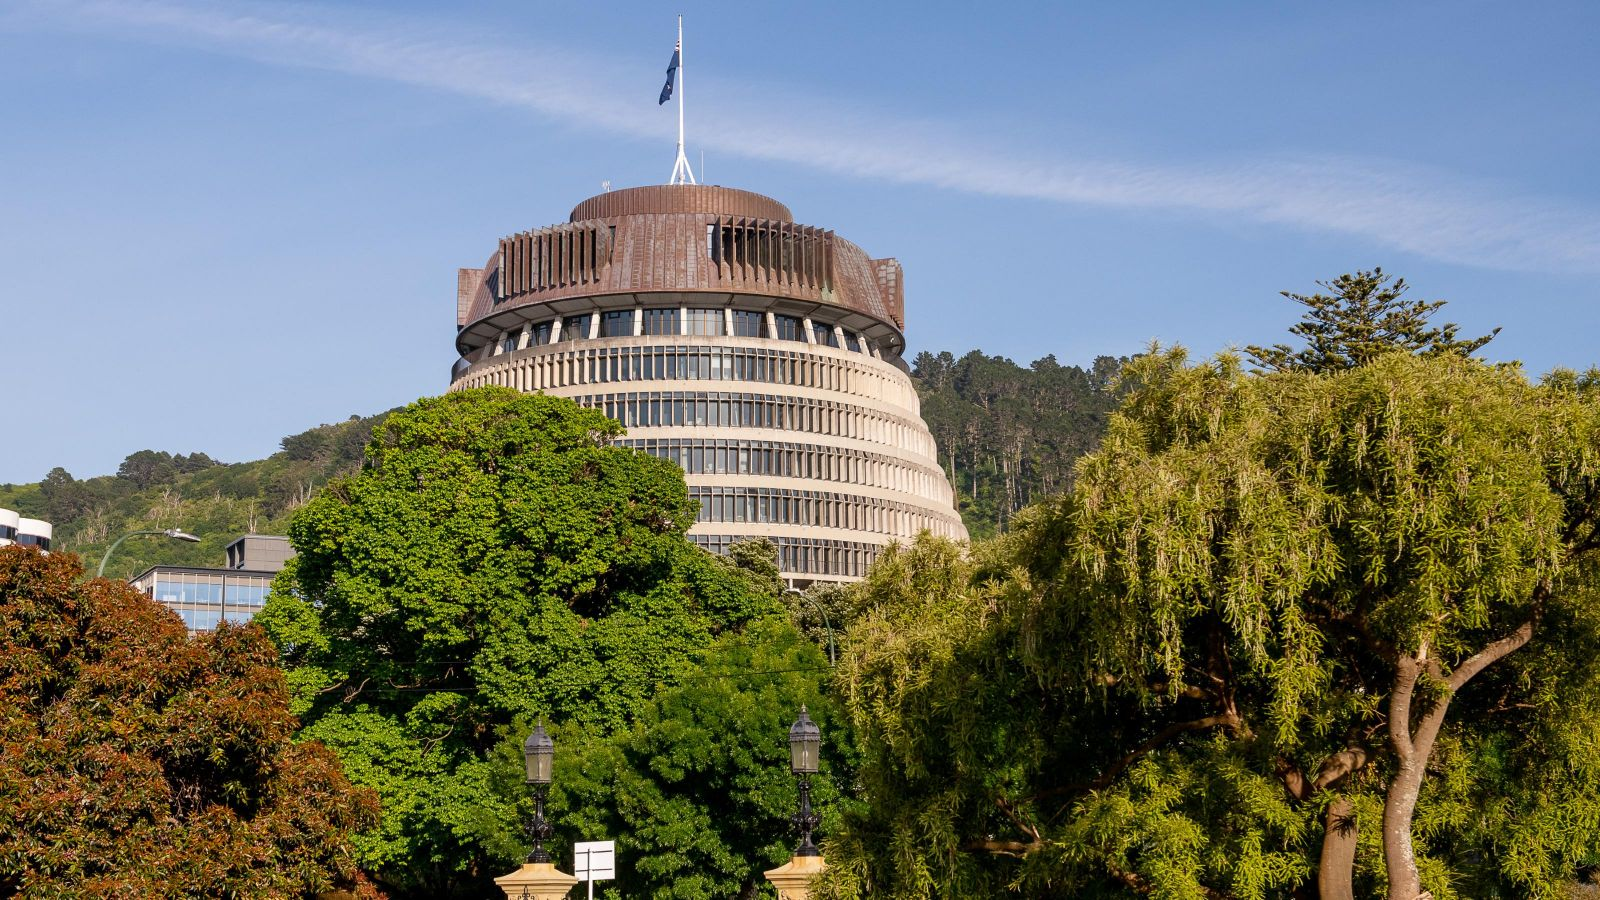 View of the Beehive (NZ parliament) from the Old Government Buildings